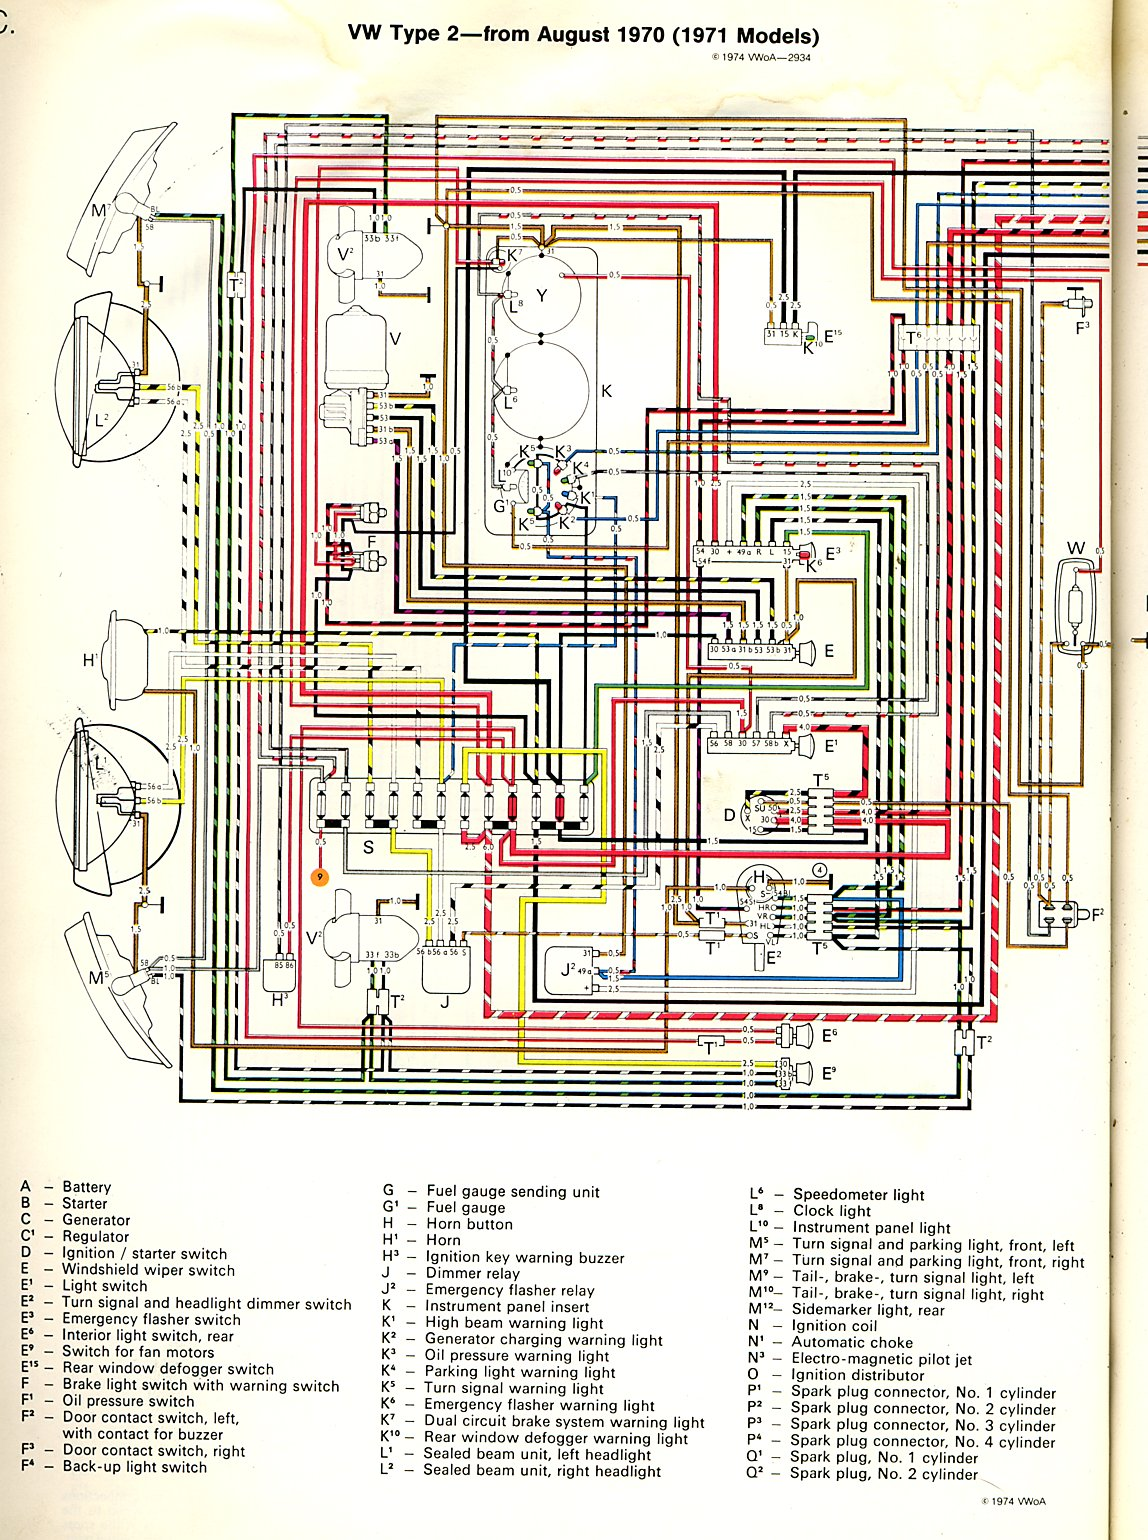 Oil Pressure Sender Wiring Diagram